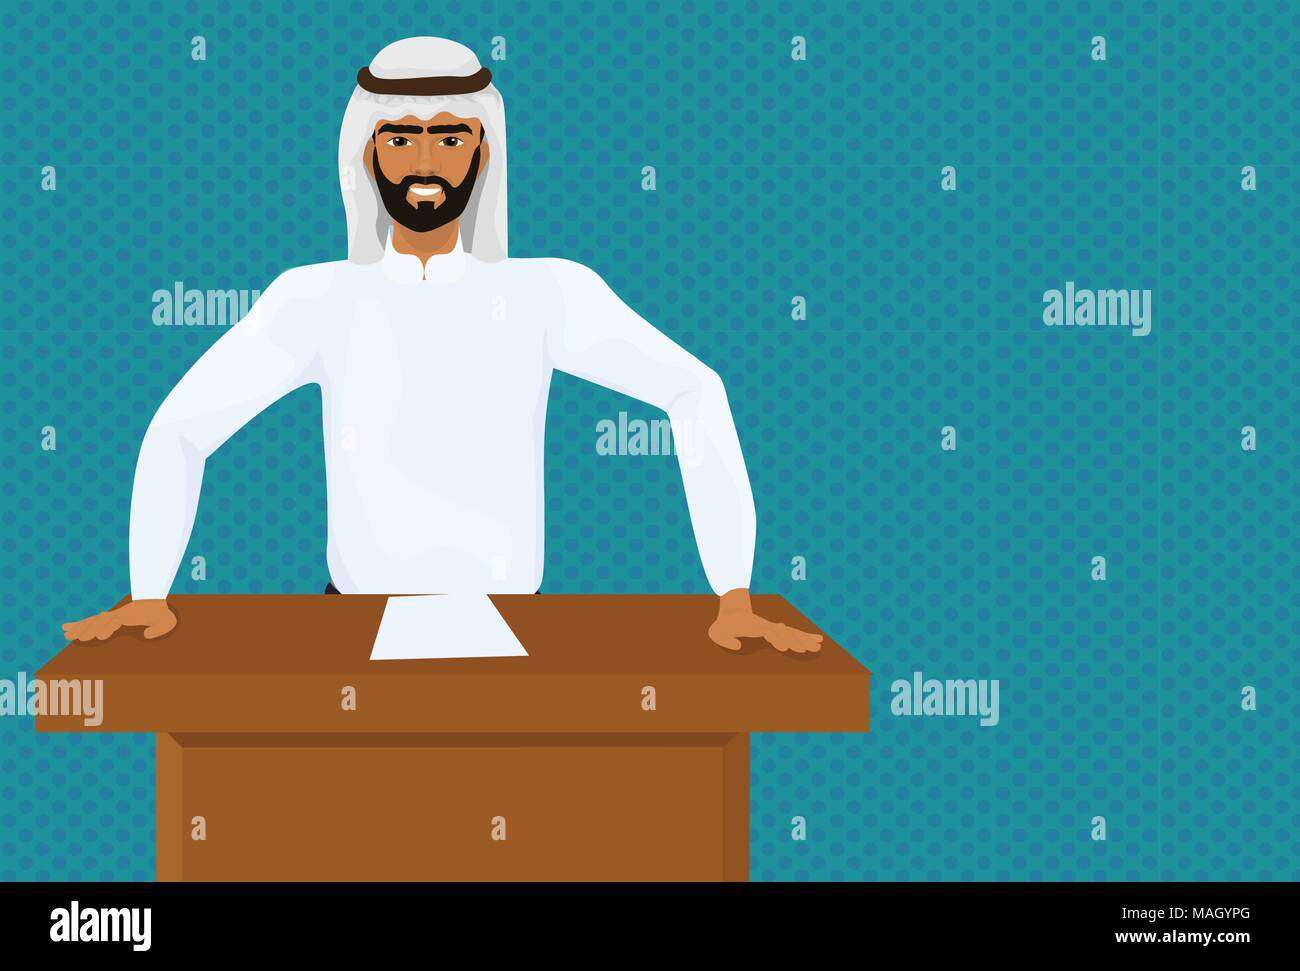 Arab Business Man Or Politician Leading Speech On Conference Or Meeting Presentation Standing At Tribune - Stock Image